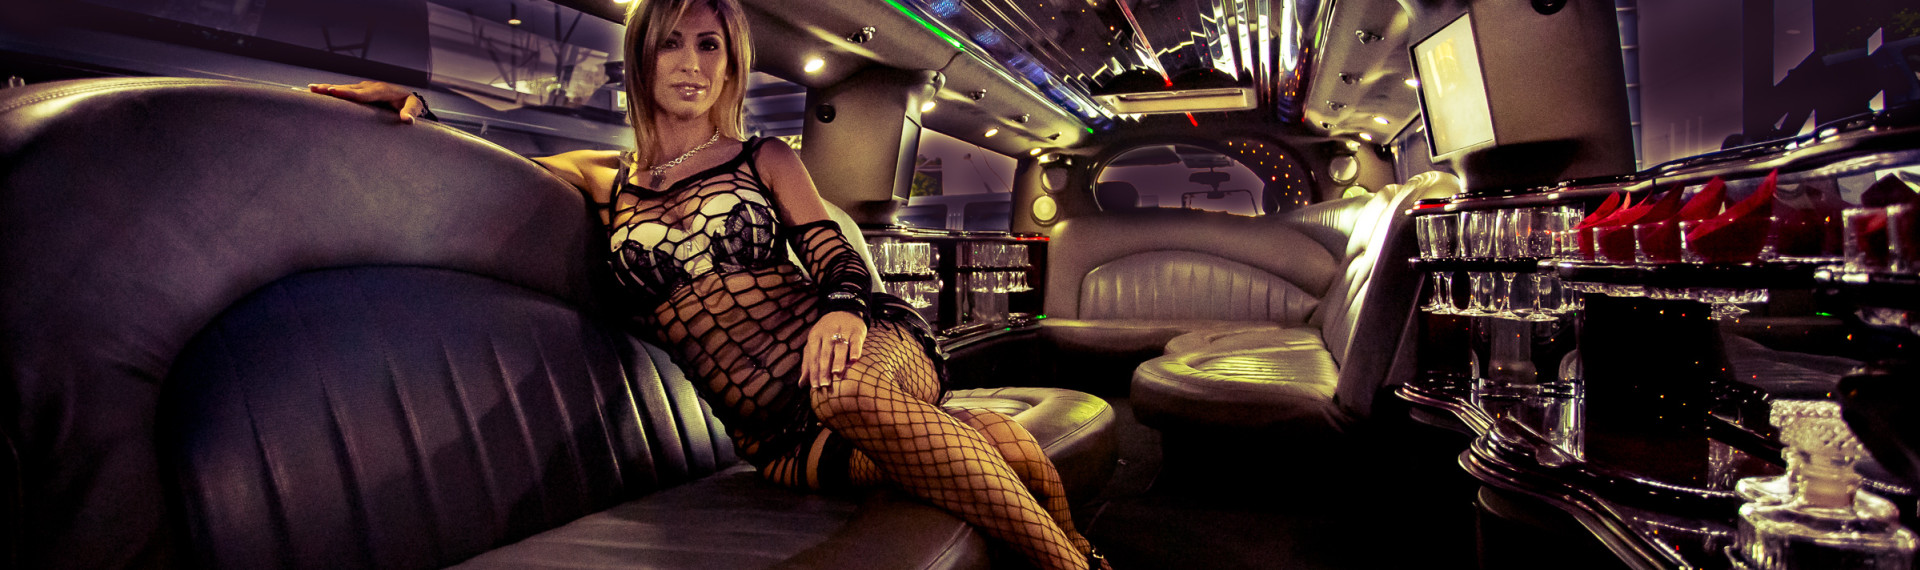 Strip-Limousine Prague